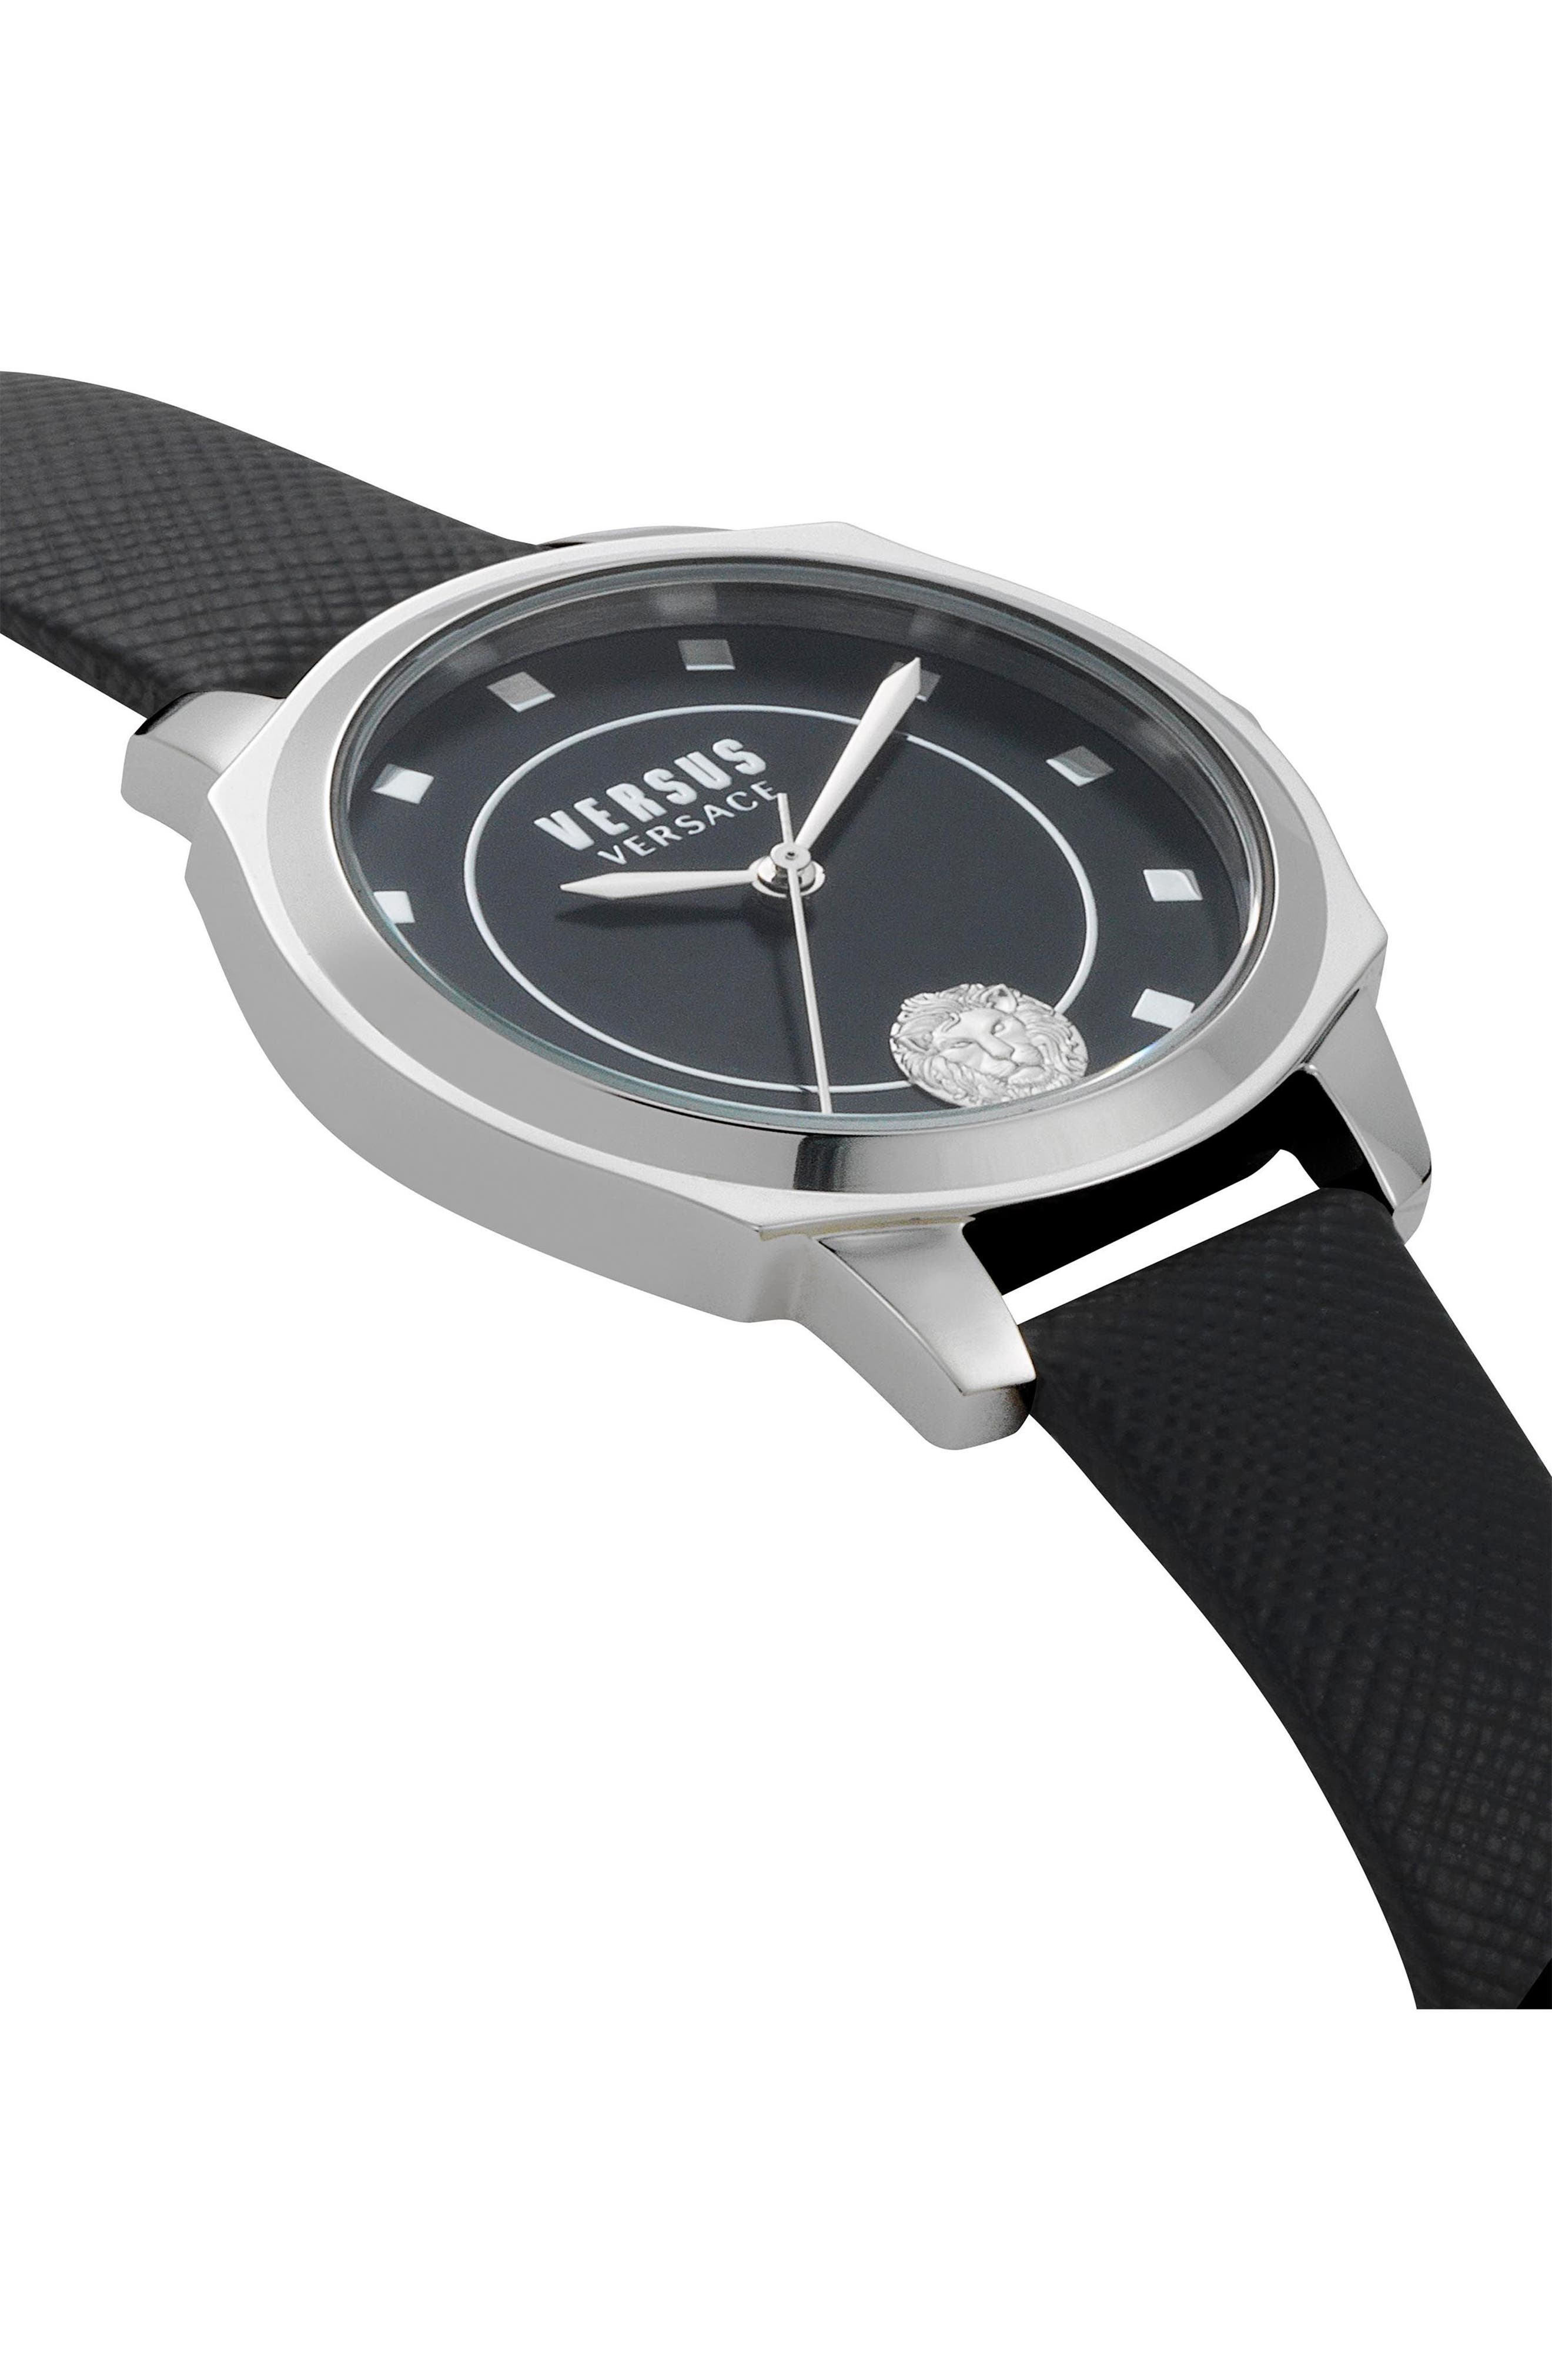 VERSUS by Versace Chelsea Leather Strap Watch, 34mm,                             Alternate thumbnail 3, color,                             Black/ Silver